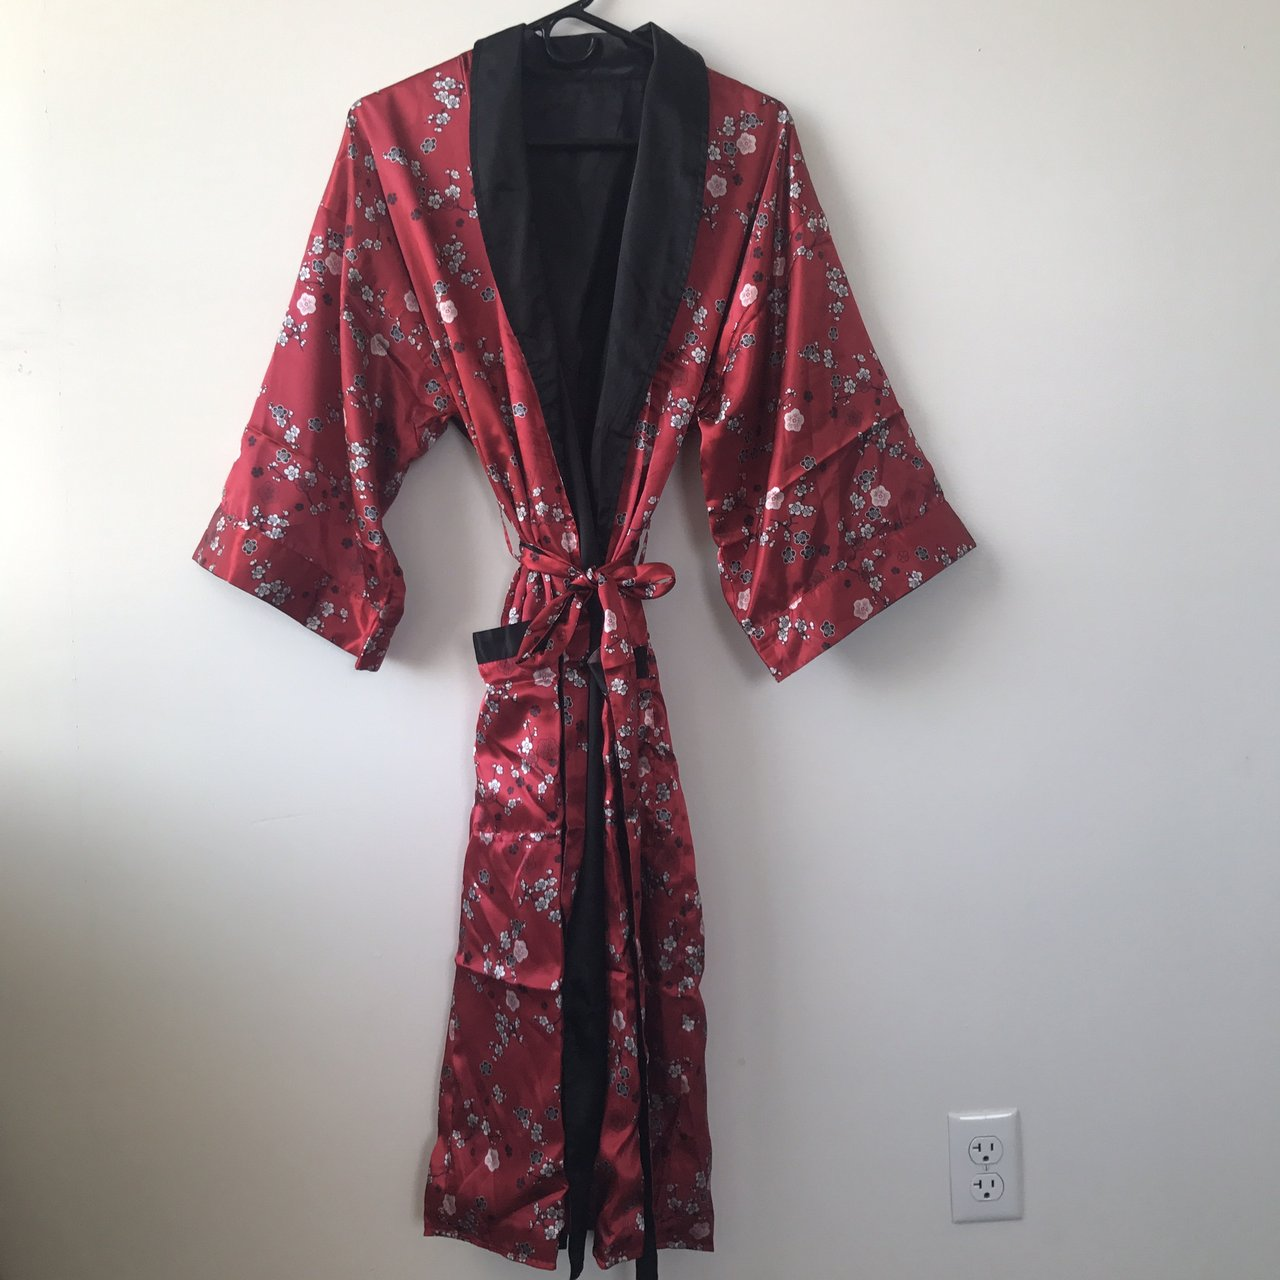 31d374fa8e Kimono silk robe. Very comfortable and wearable in home or - Depop